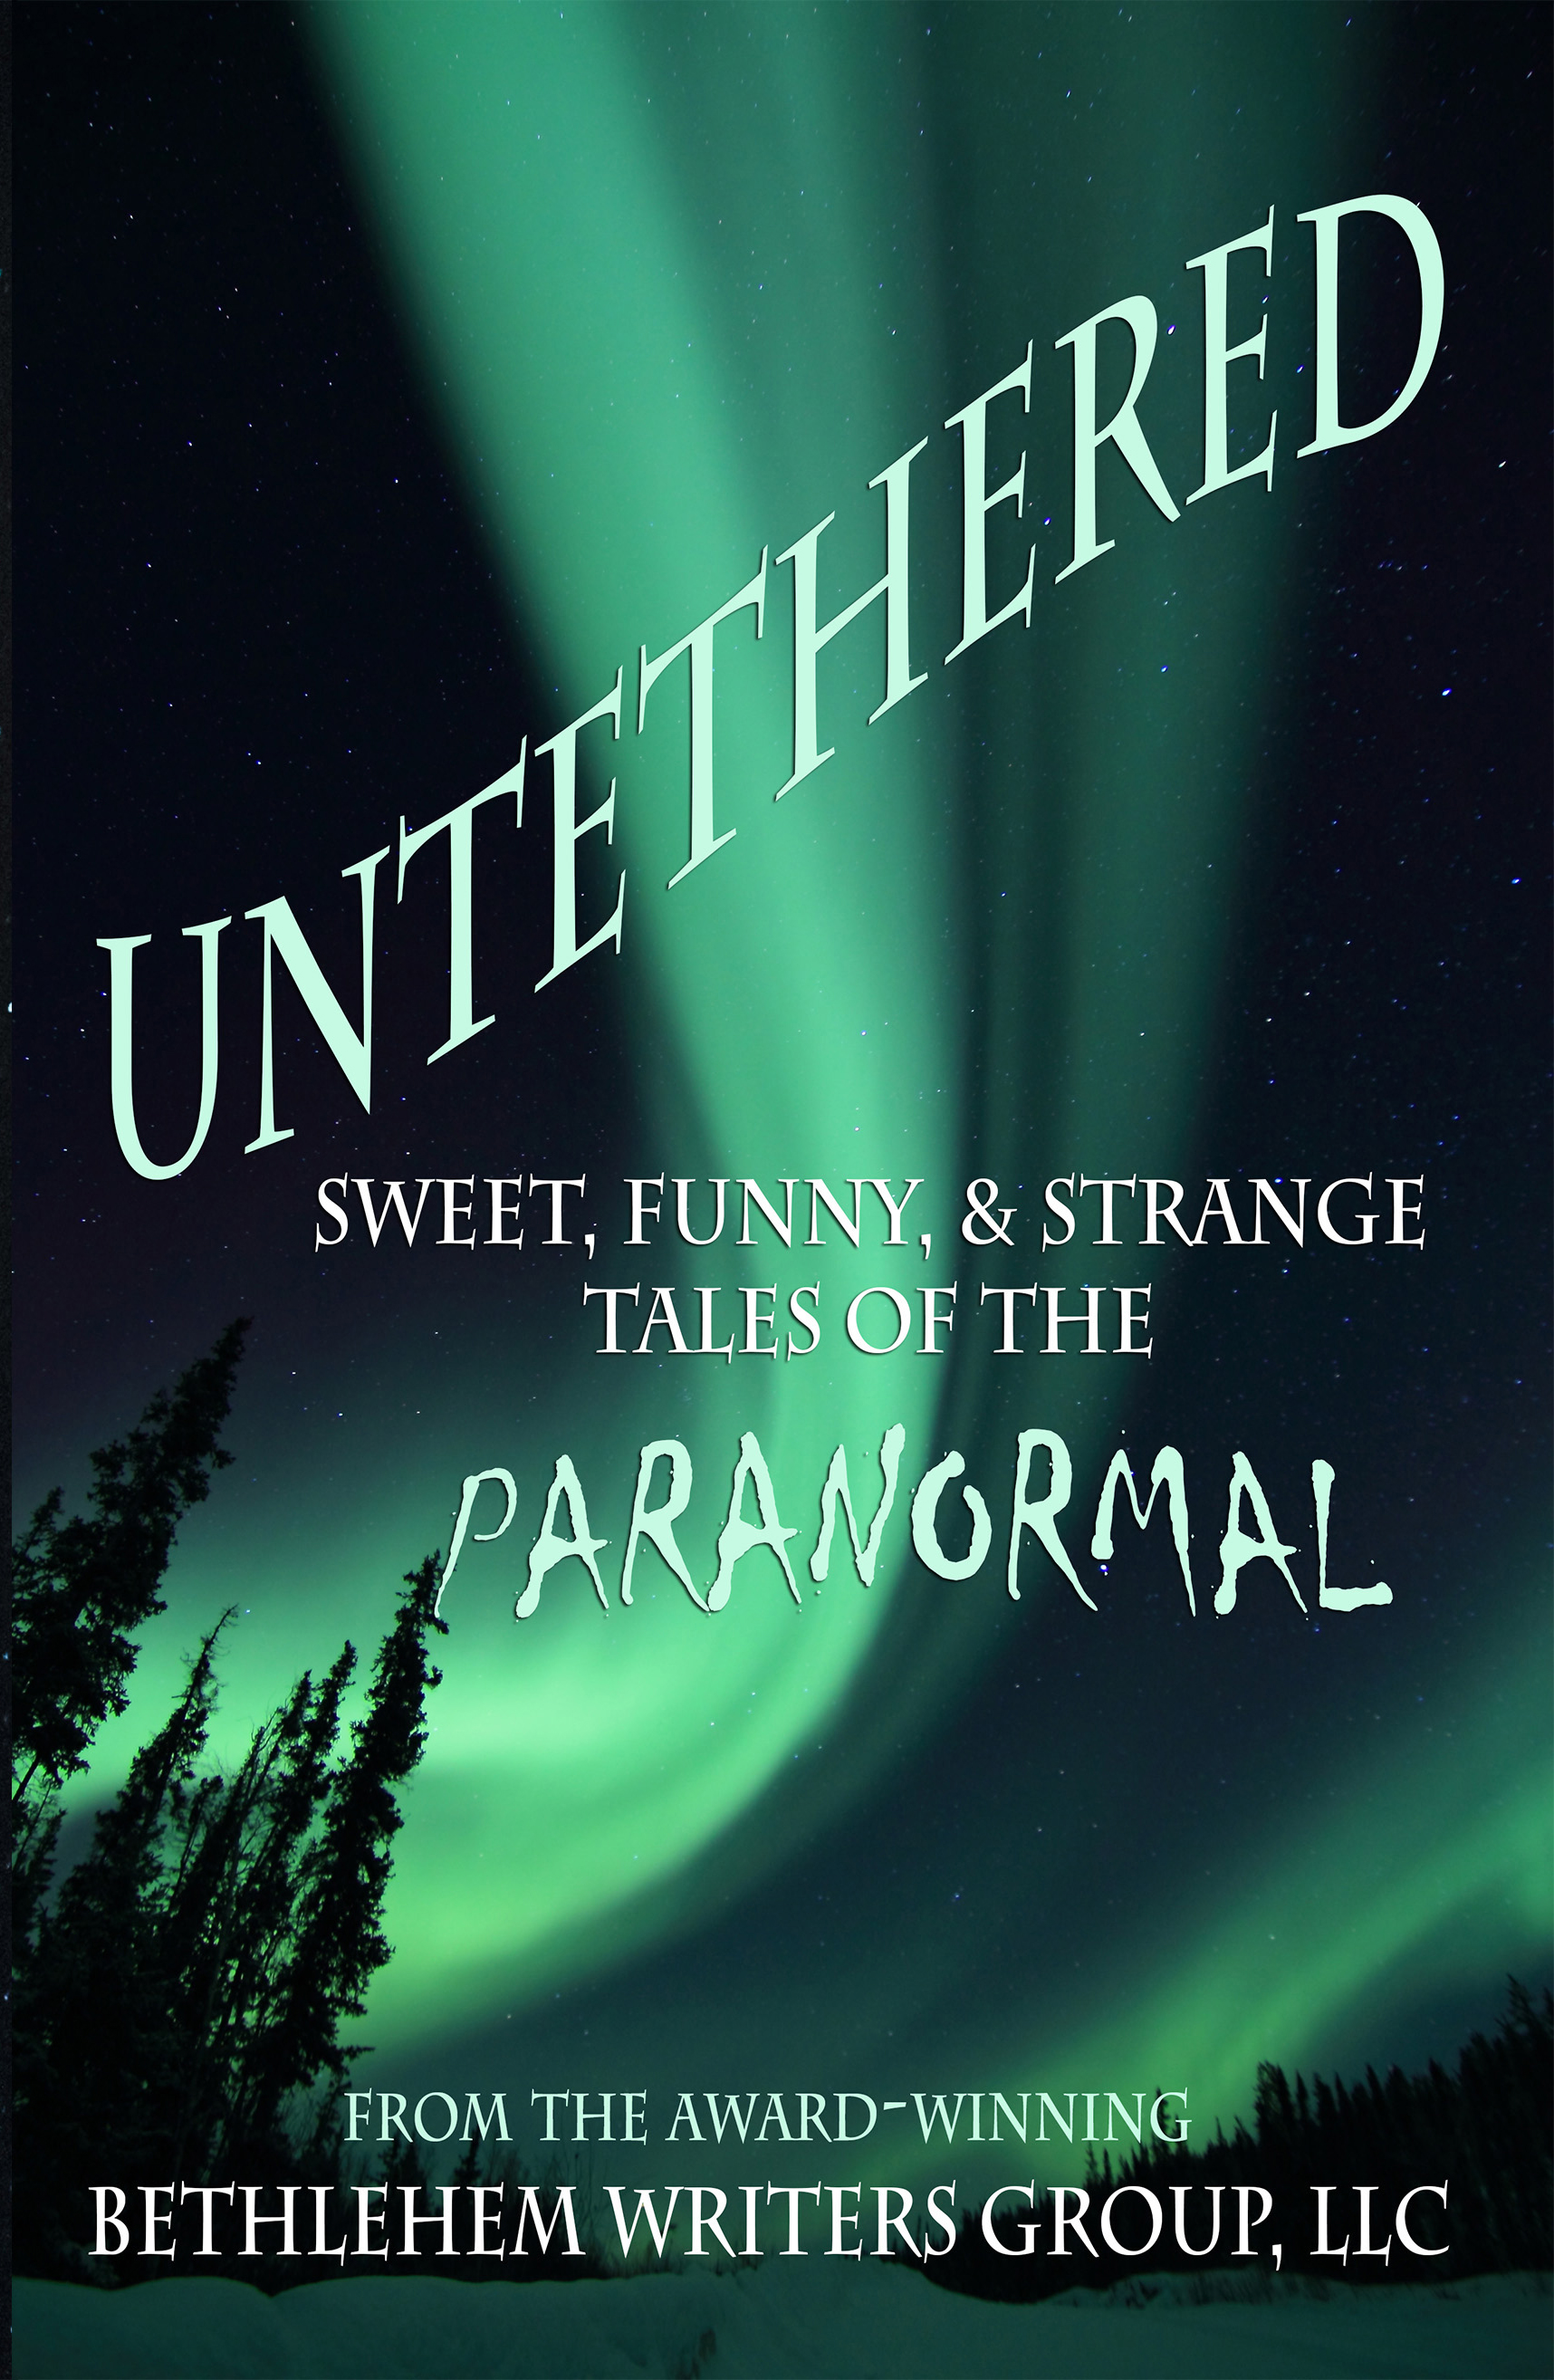 Untethered: Sweet, Funny, and Strange Tales of the Paranormal | Bethlehem Writers Group, LLC | marianne h donley